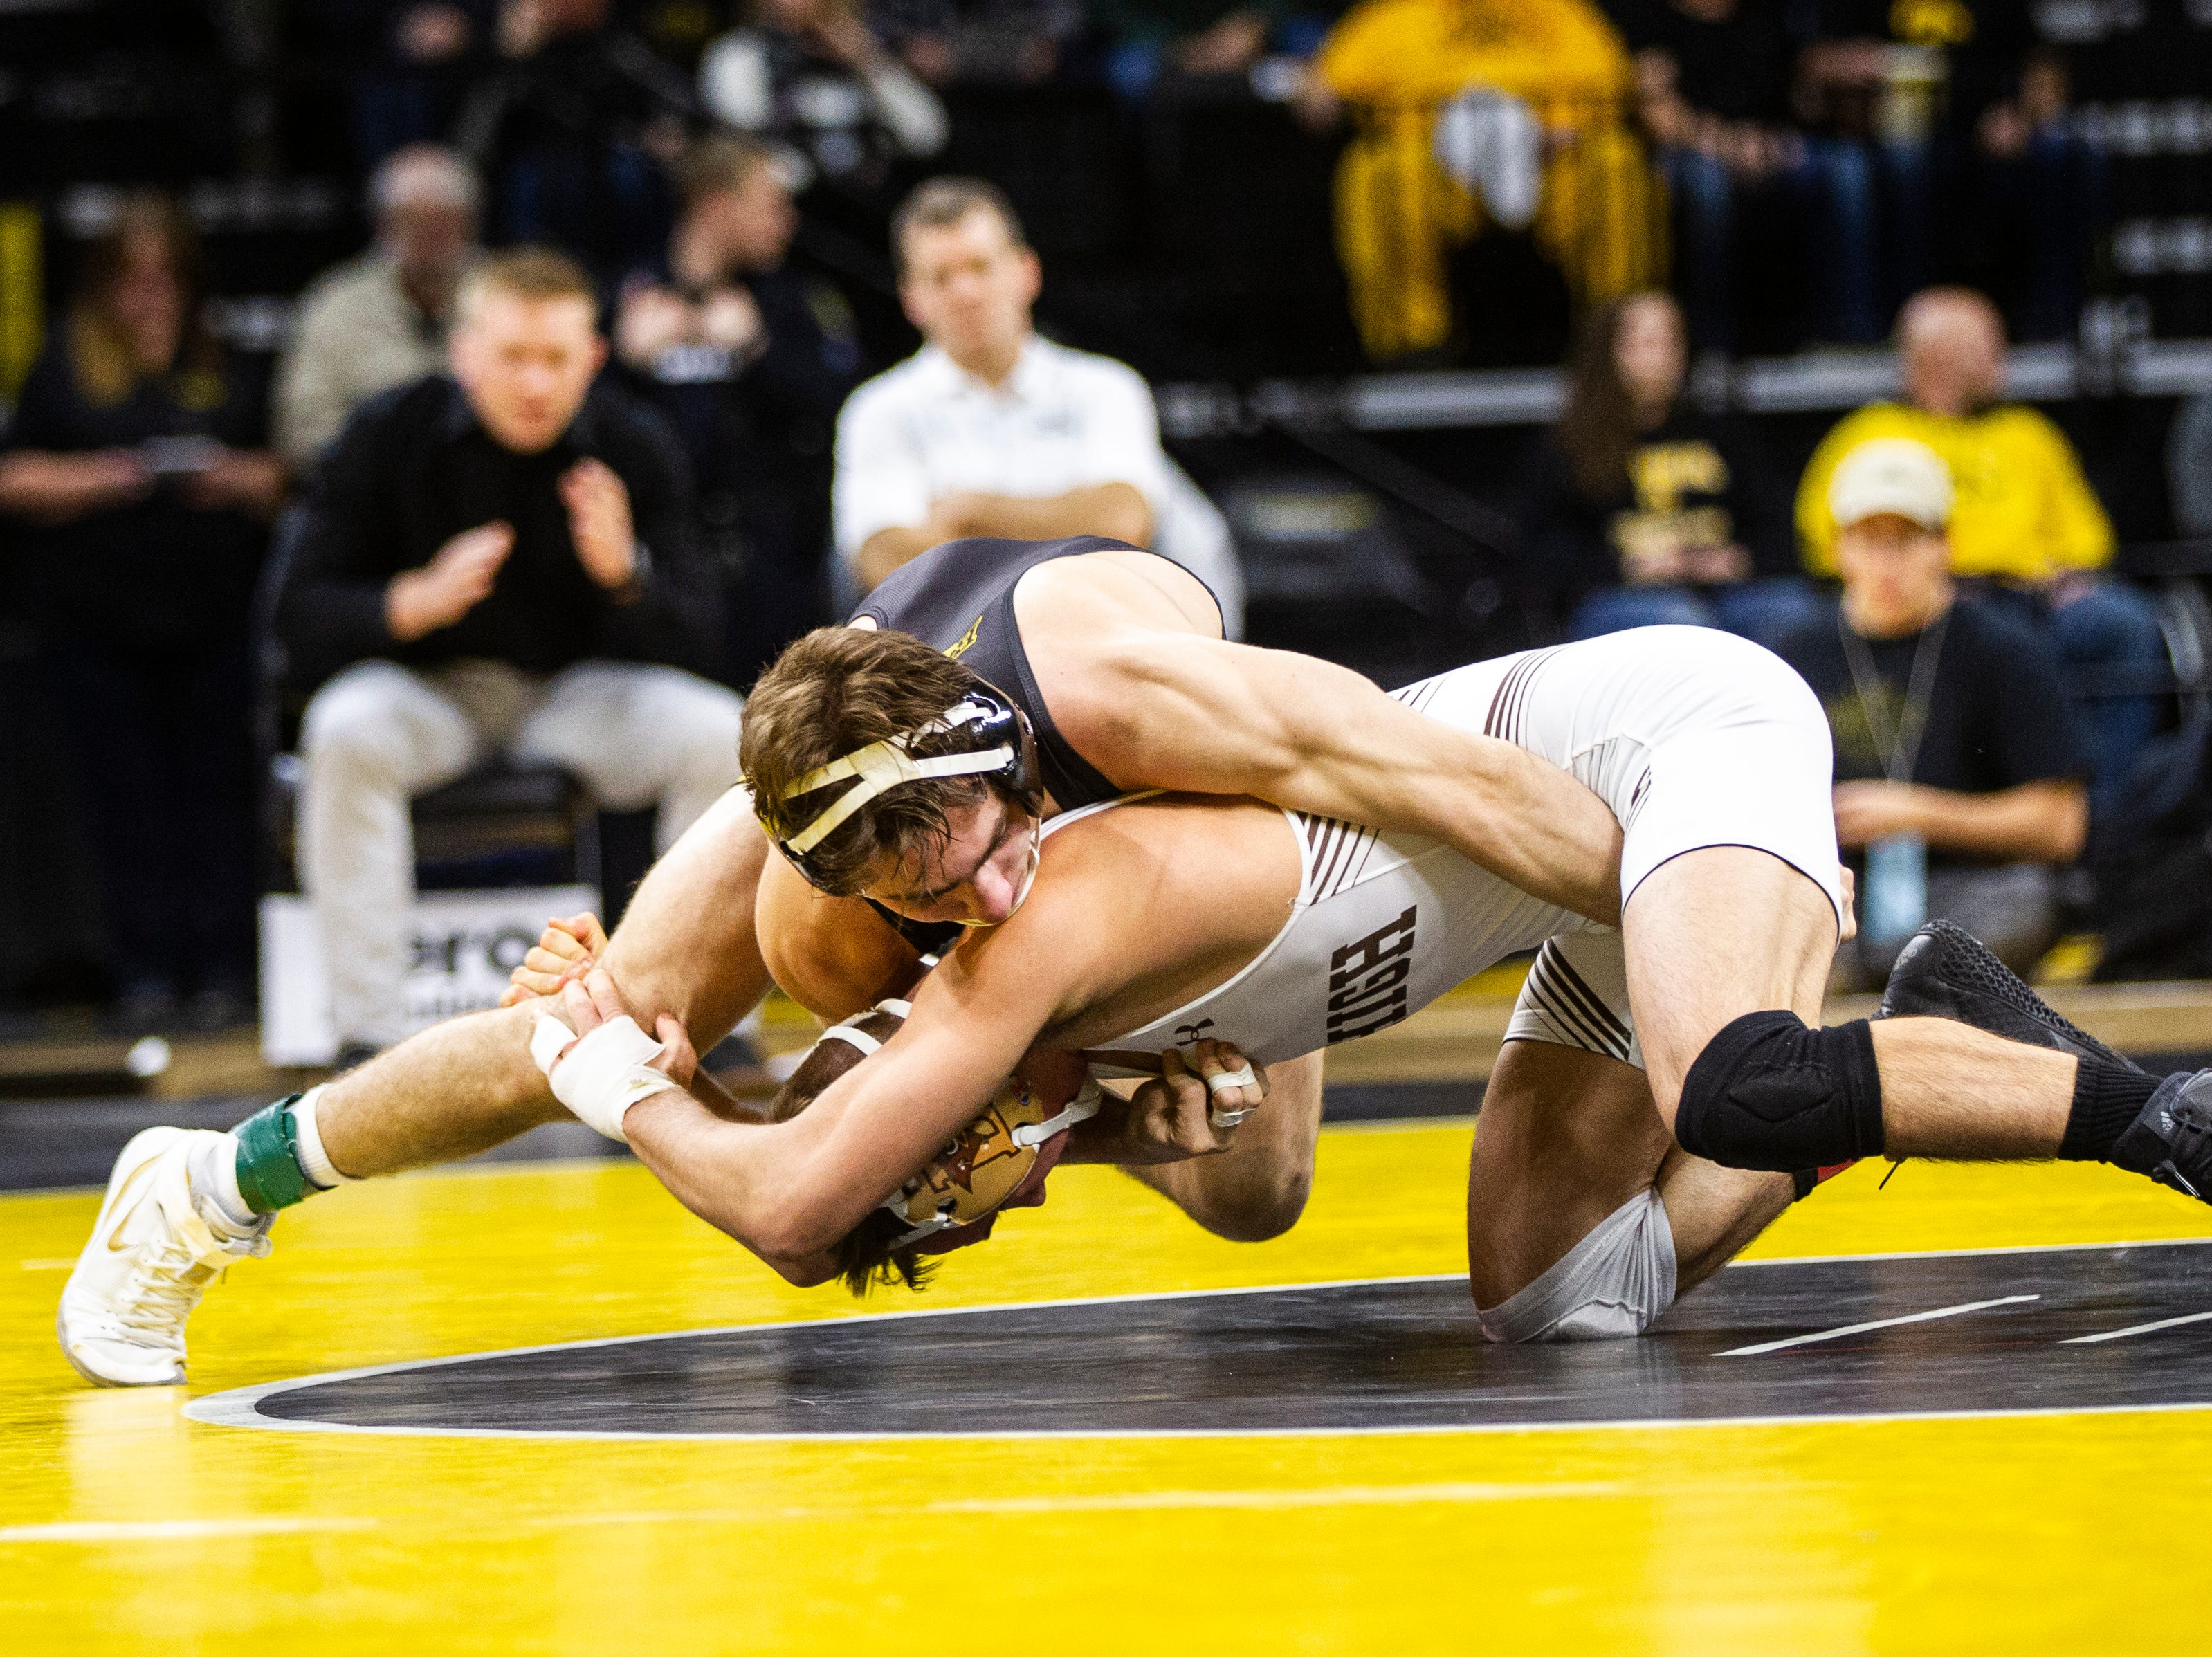 Iowa's Austin DeSanto, left, wrestles Lehigh's Brandon Paetzell at 133 during a NCAA wrestling dual on Saturday, Dec. 8, 2018, at Carver-Hawkeye Arena in Iowa City.